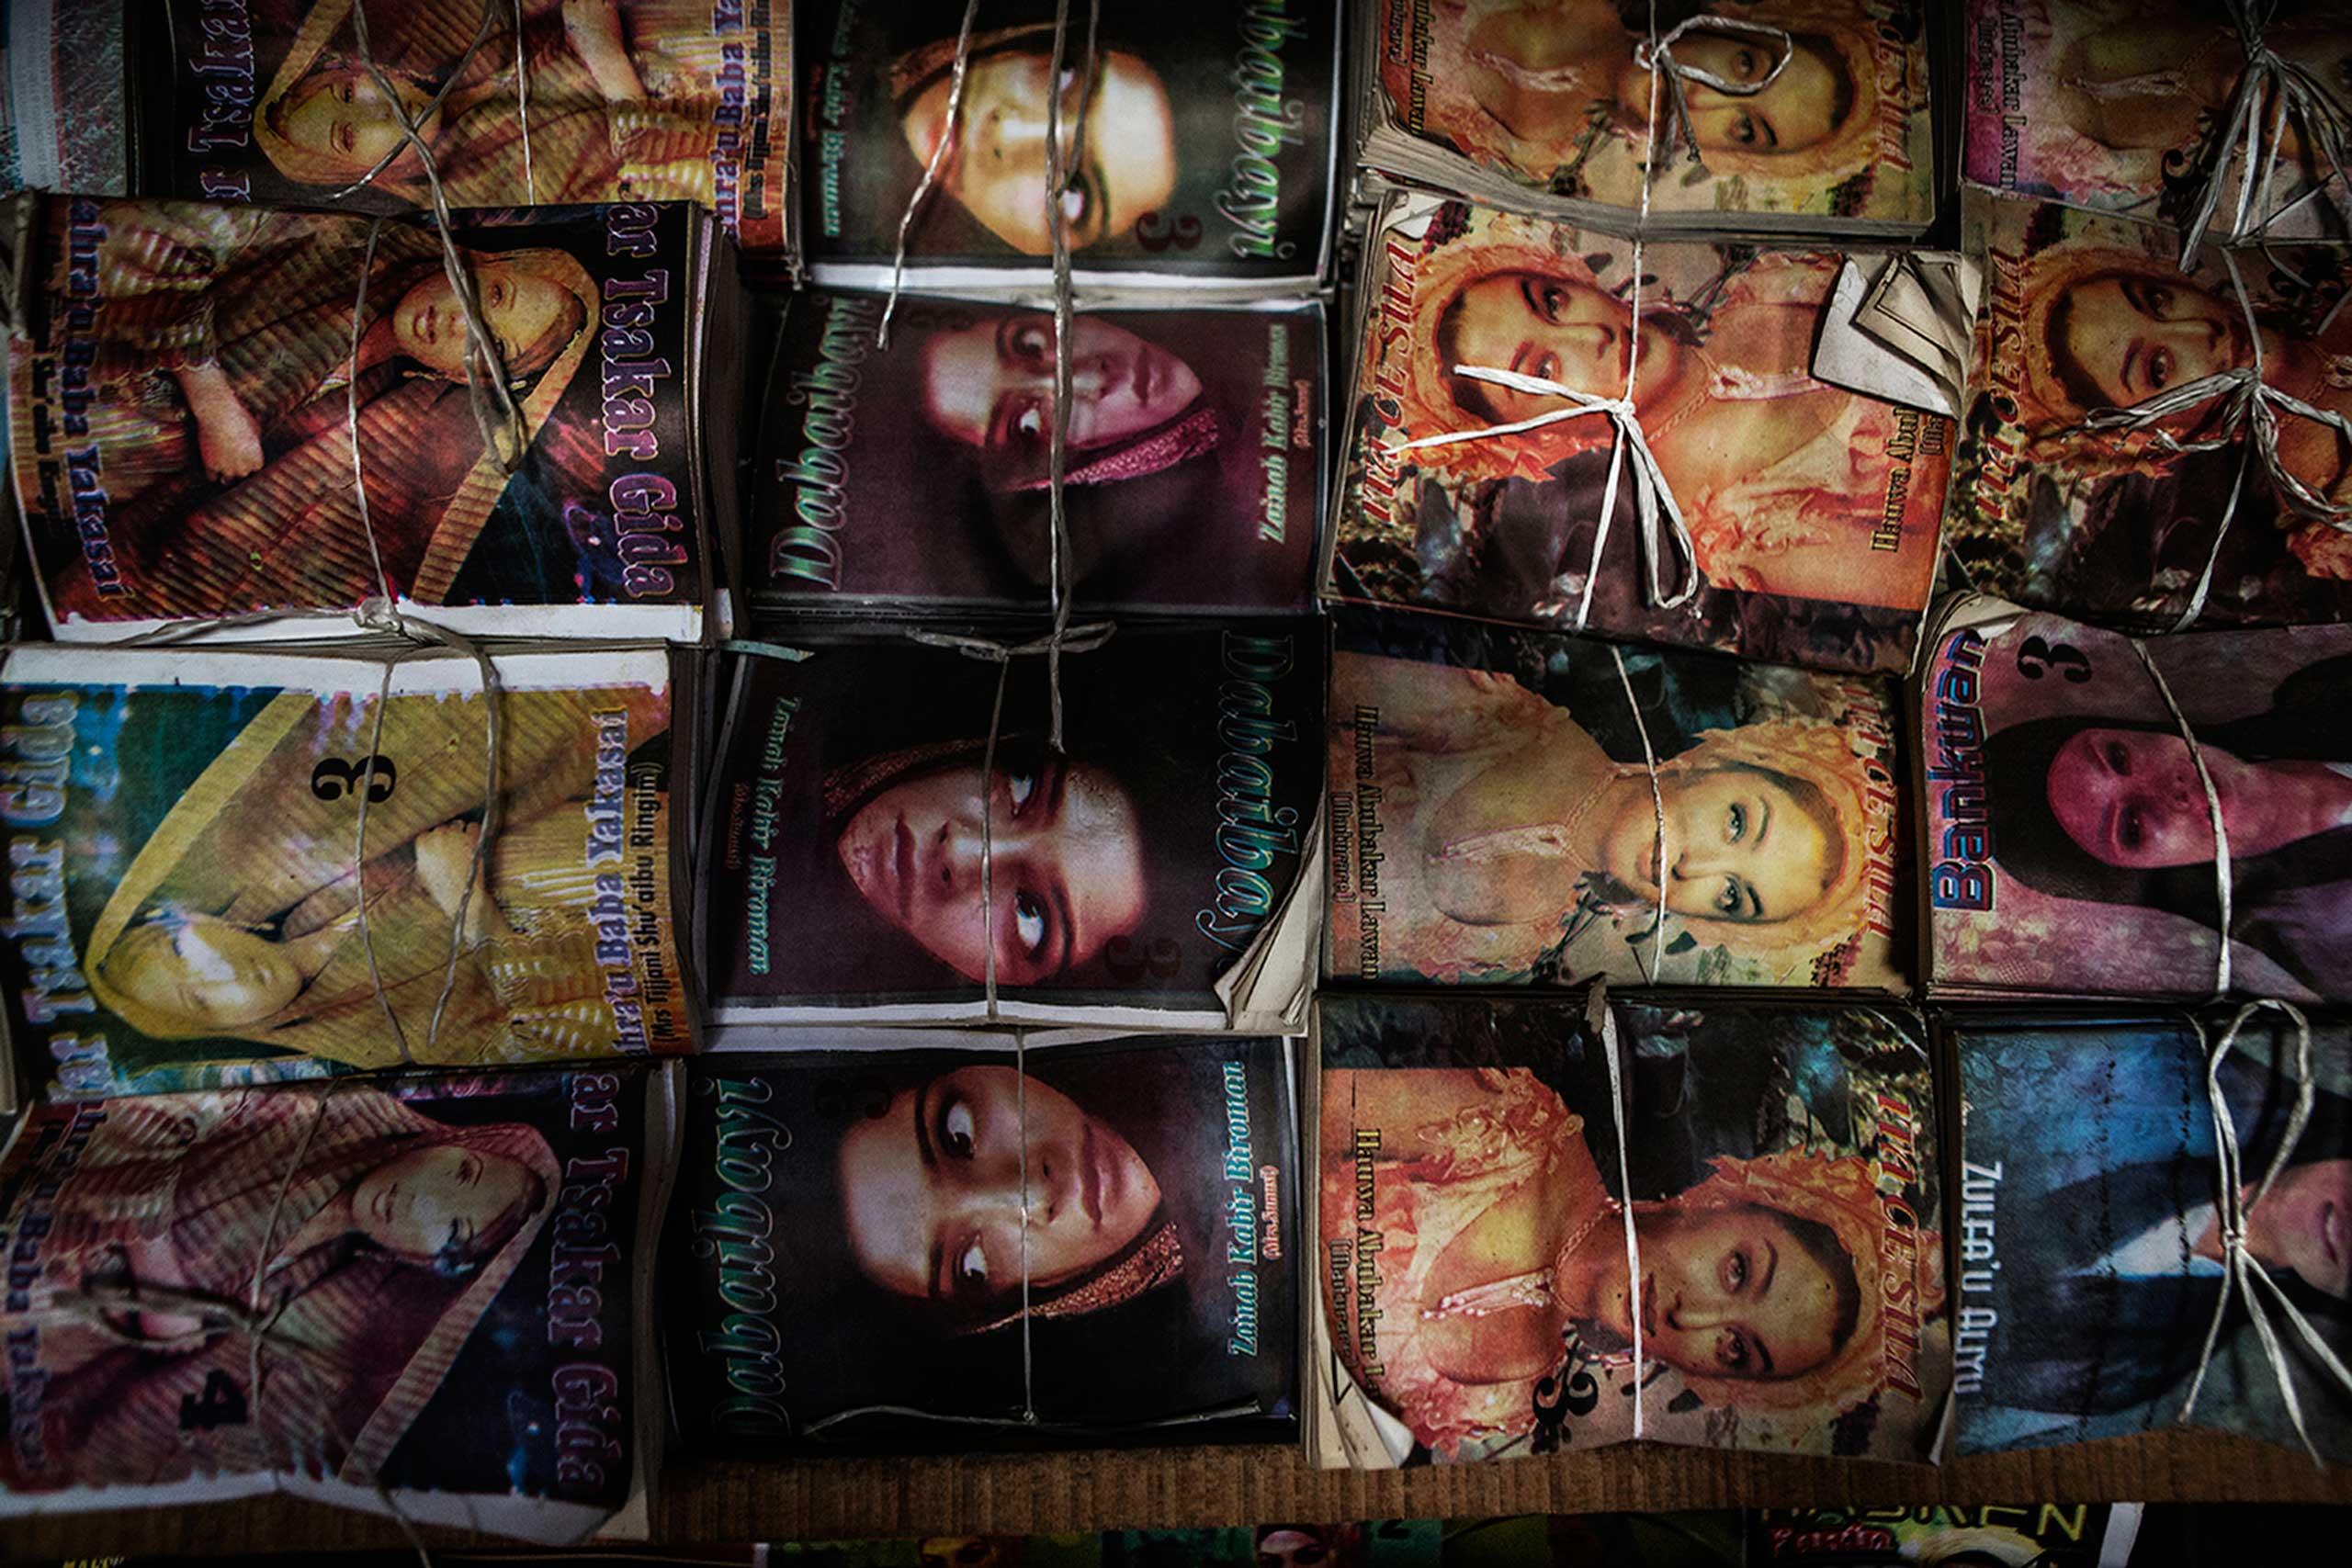 Books are tied and packaged at the local market in Kano, Northern Nigeria, Oct. 4, 2013.